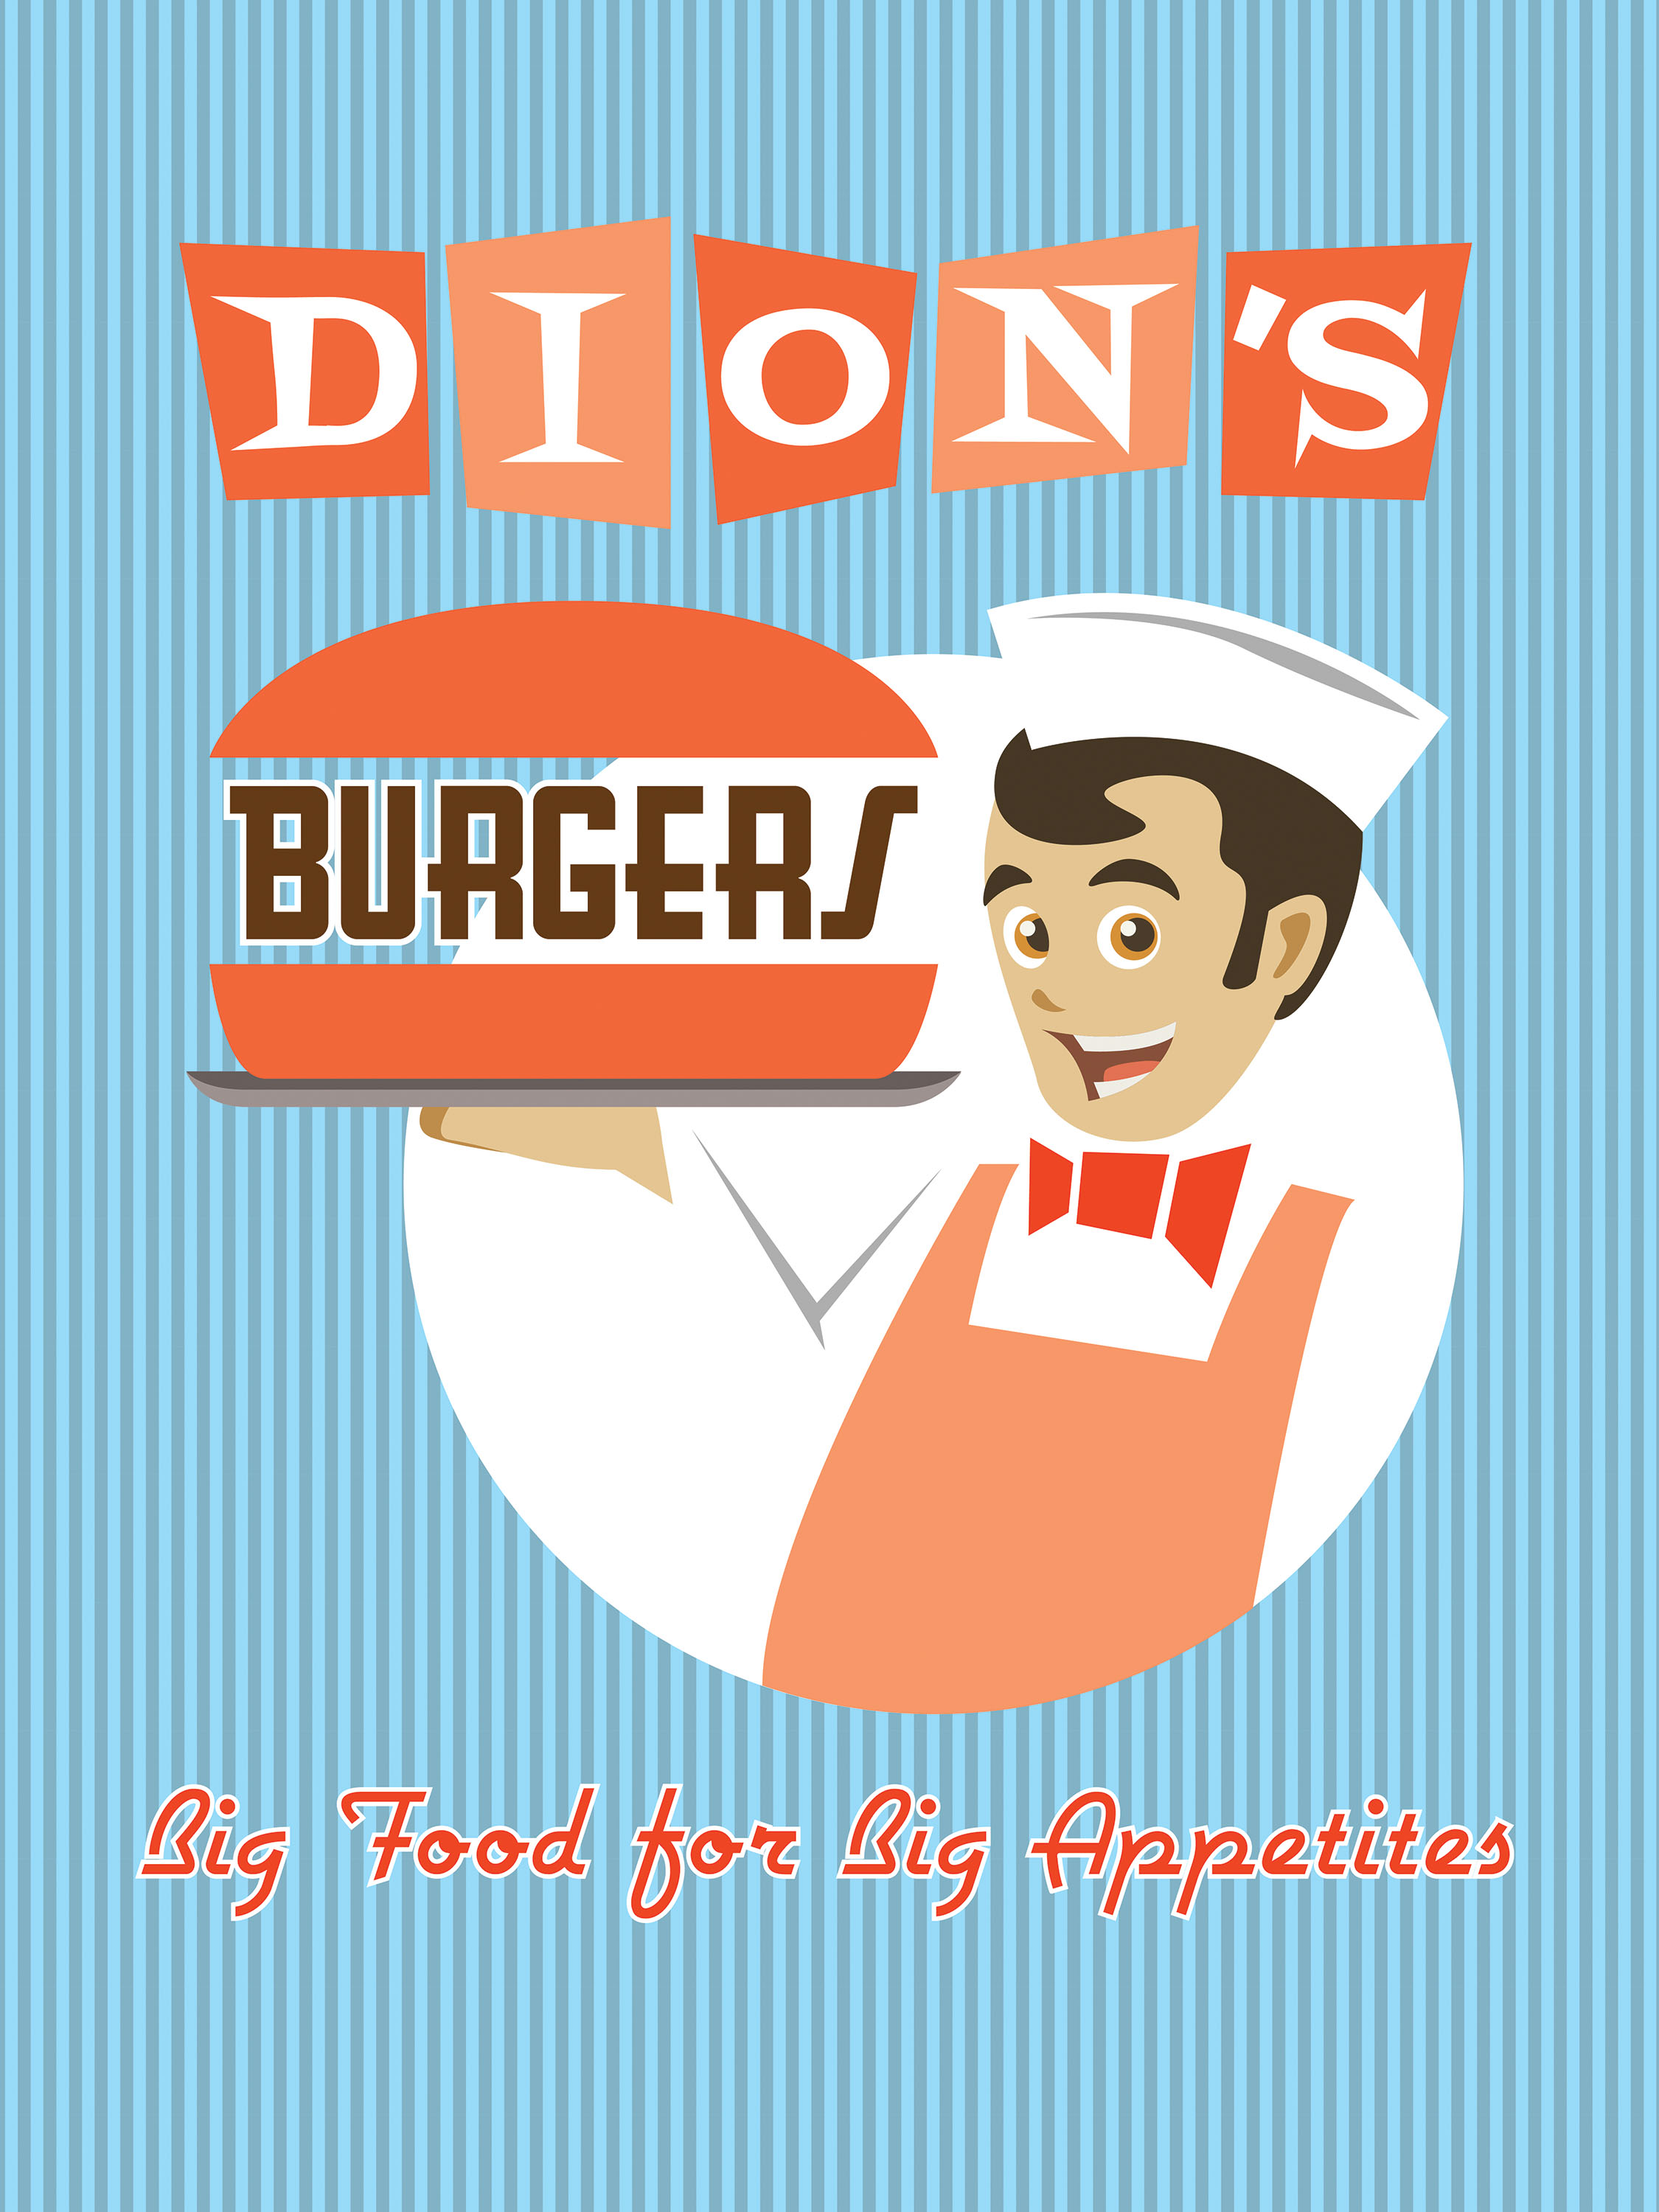 Dion's Burgers